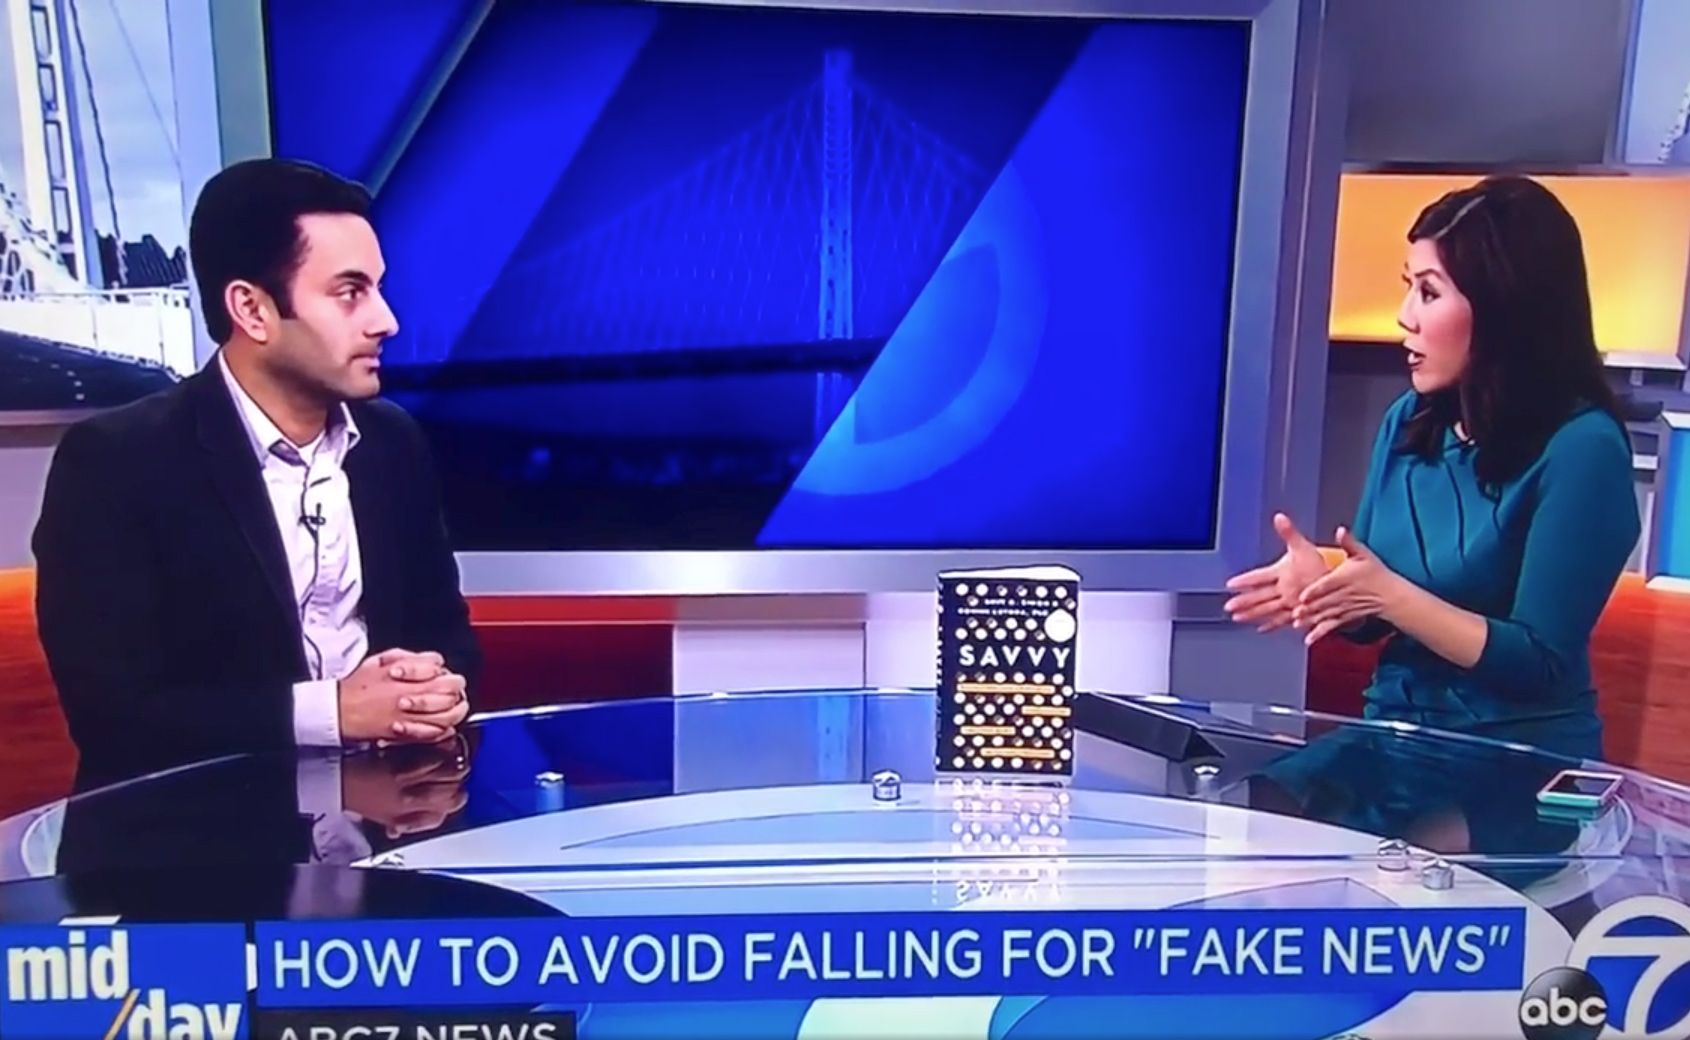 On ABC News discussing fake news